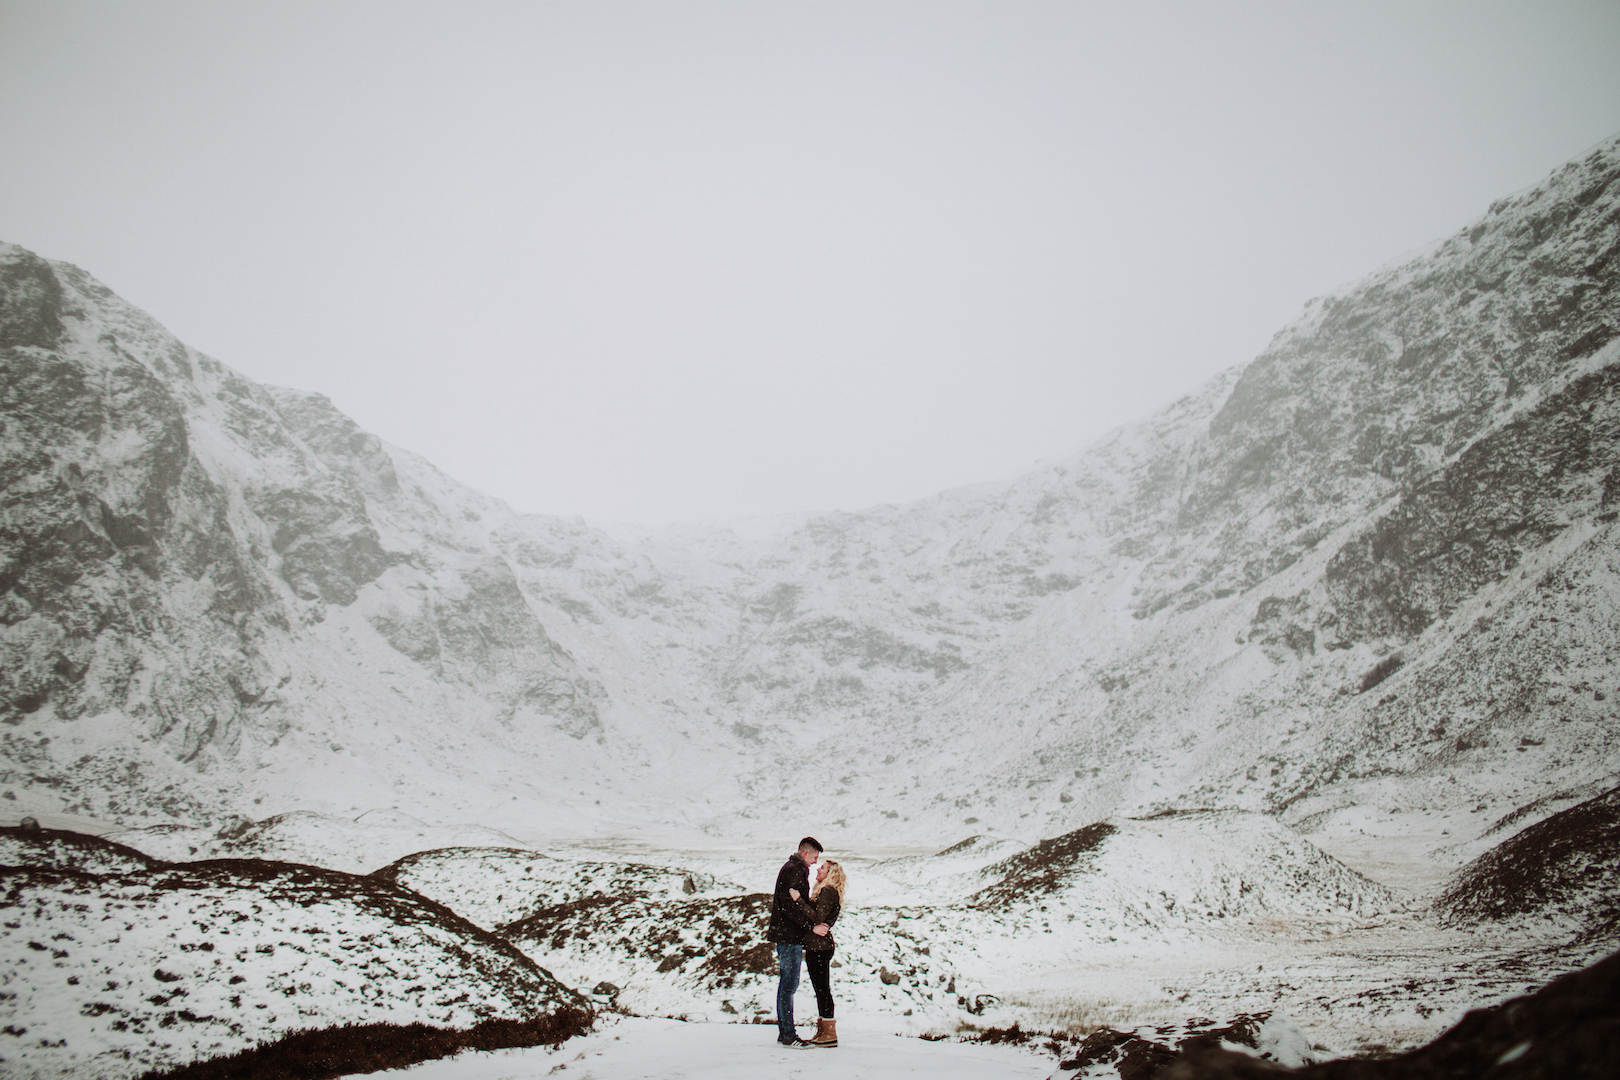 nicole +kieran - Glen Clova | December 2017